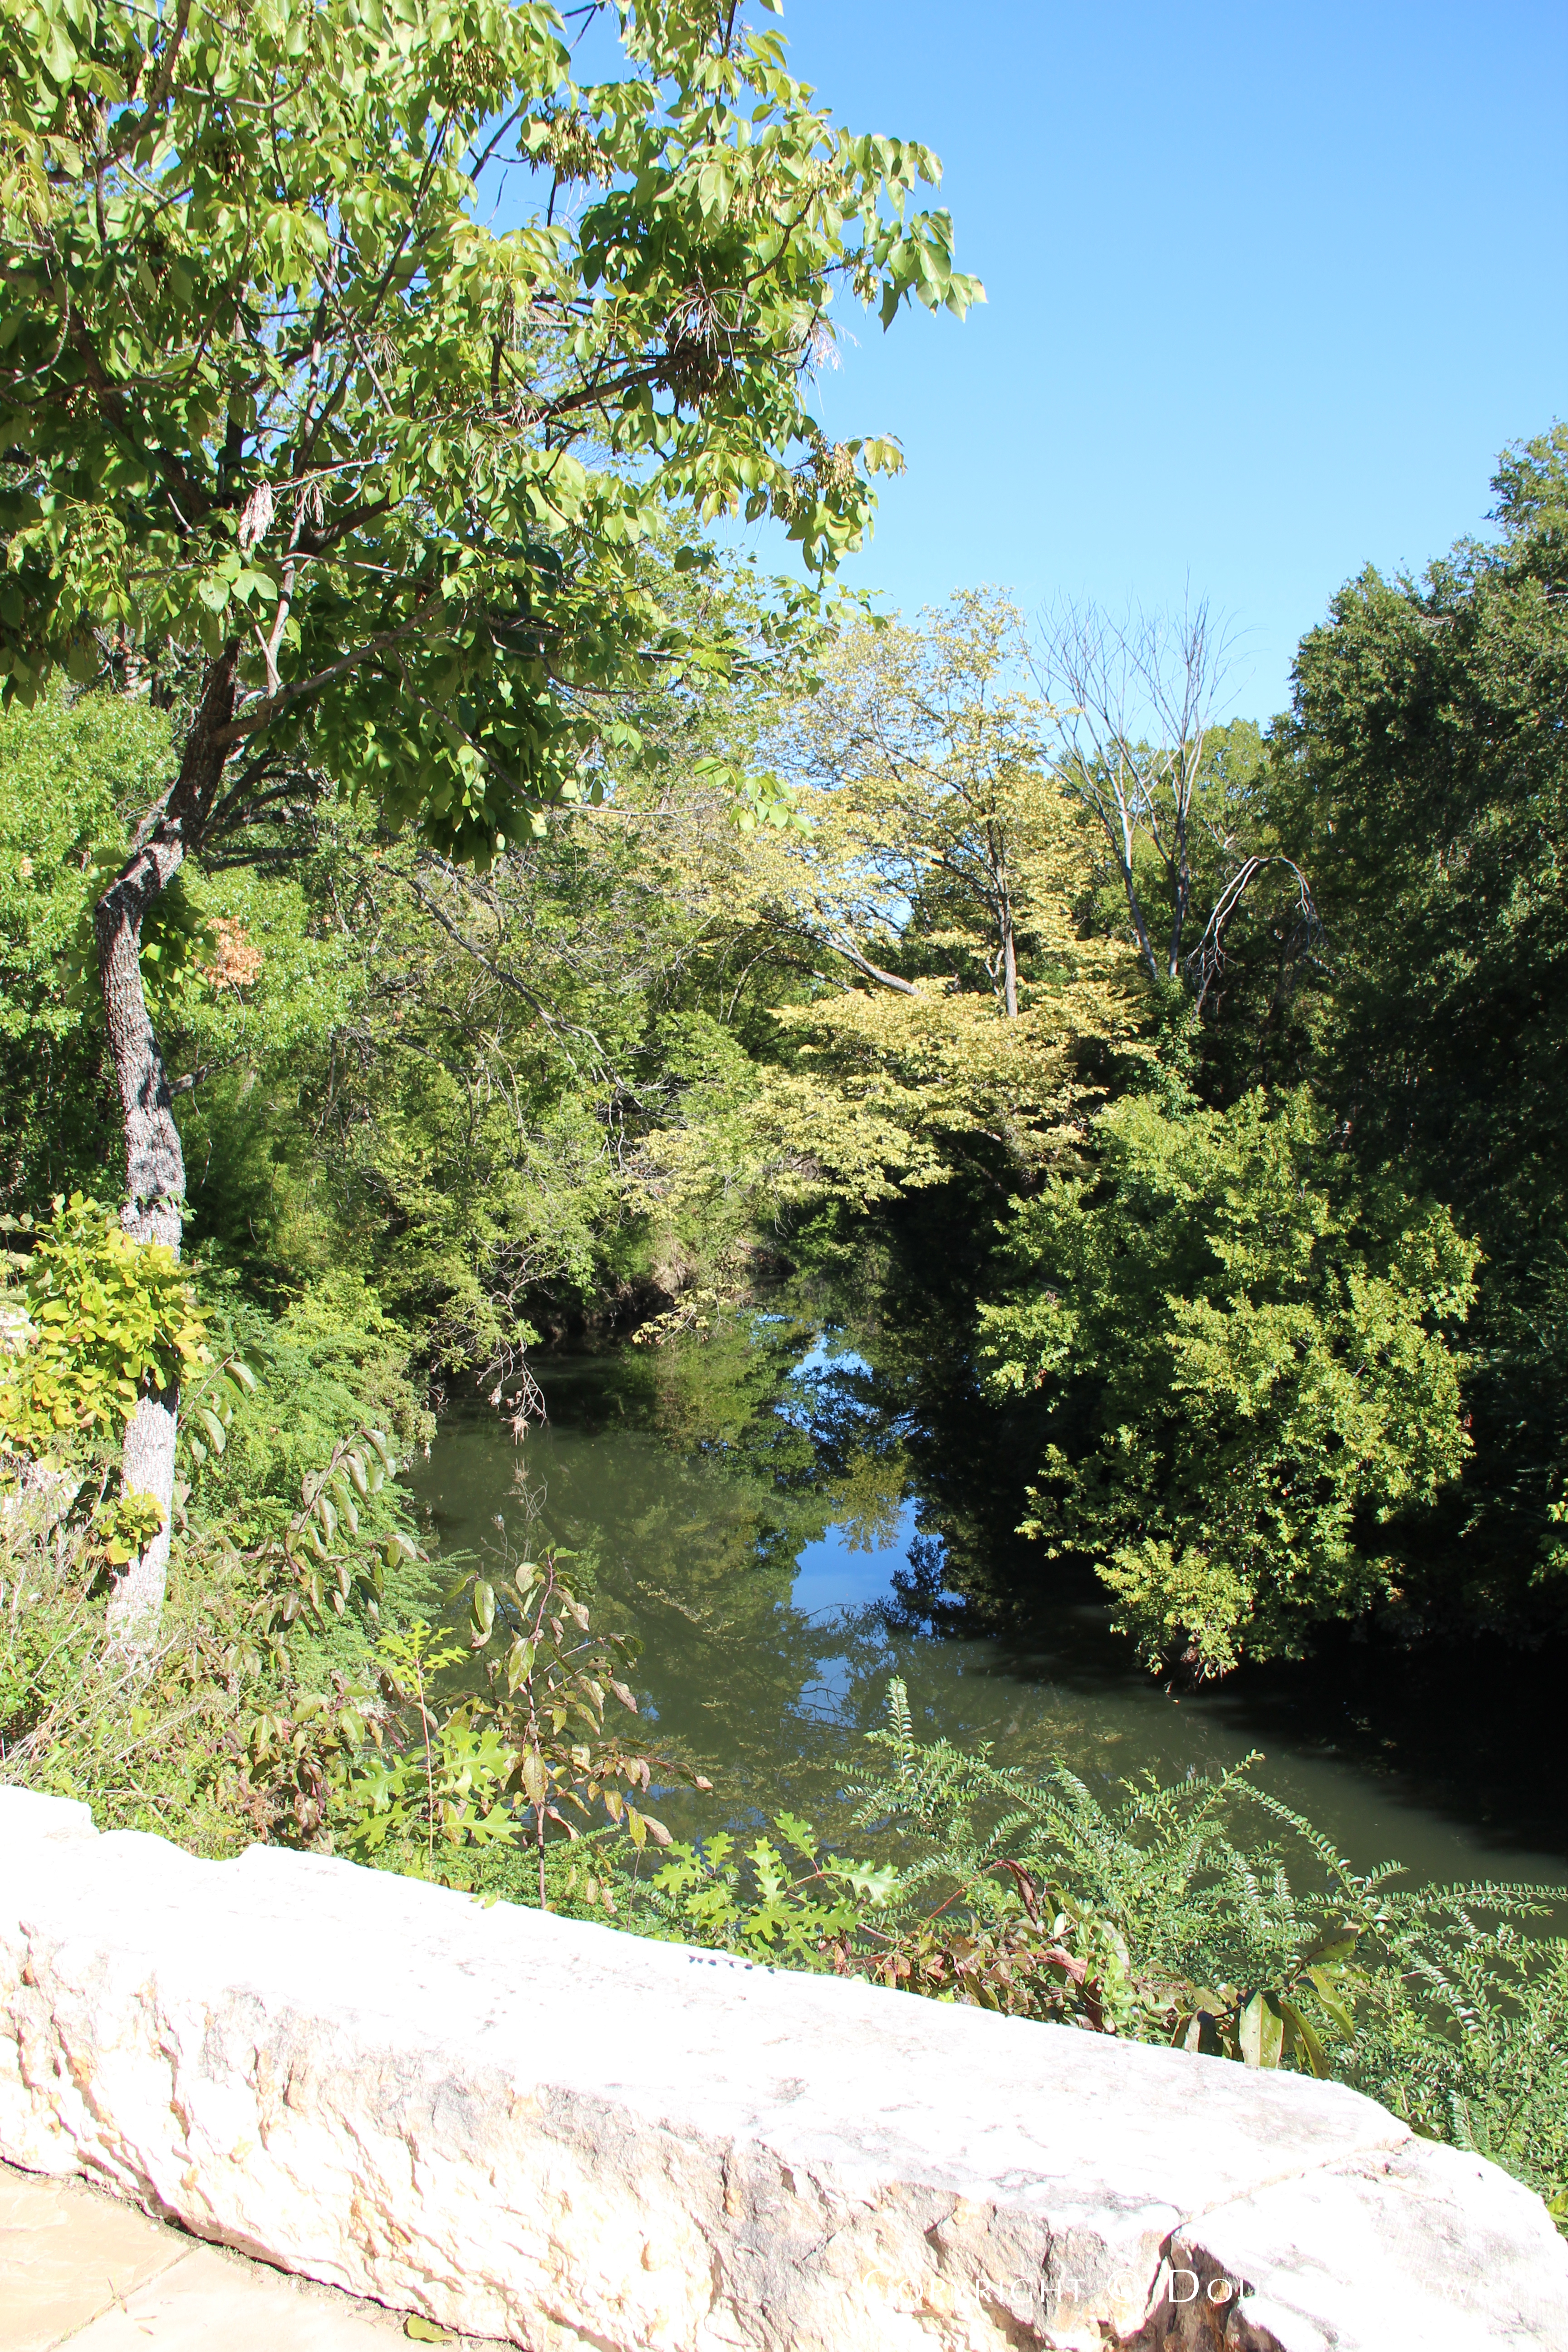 Stone Terraced Paths Overlook White Rock Creek in Glen Abbey